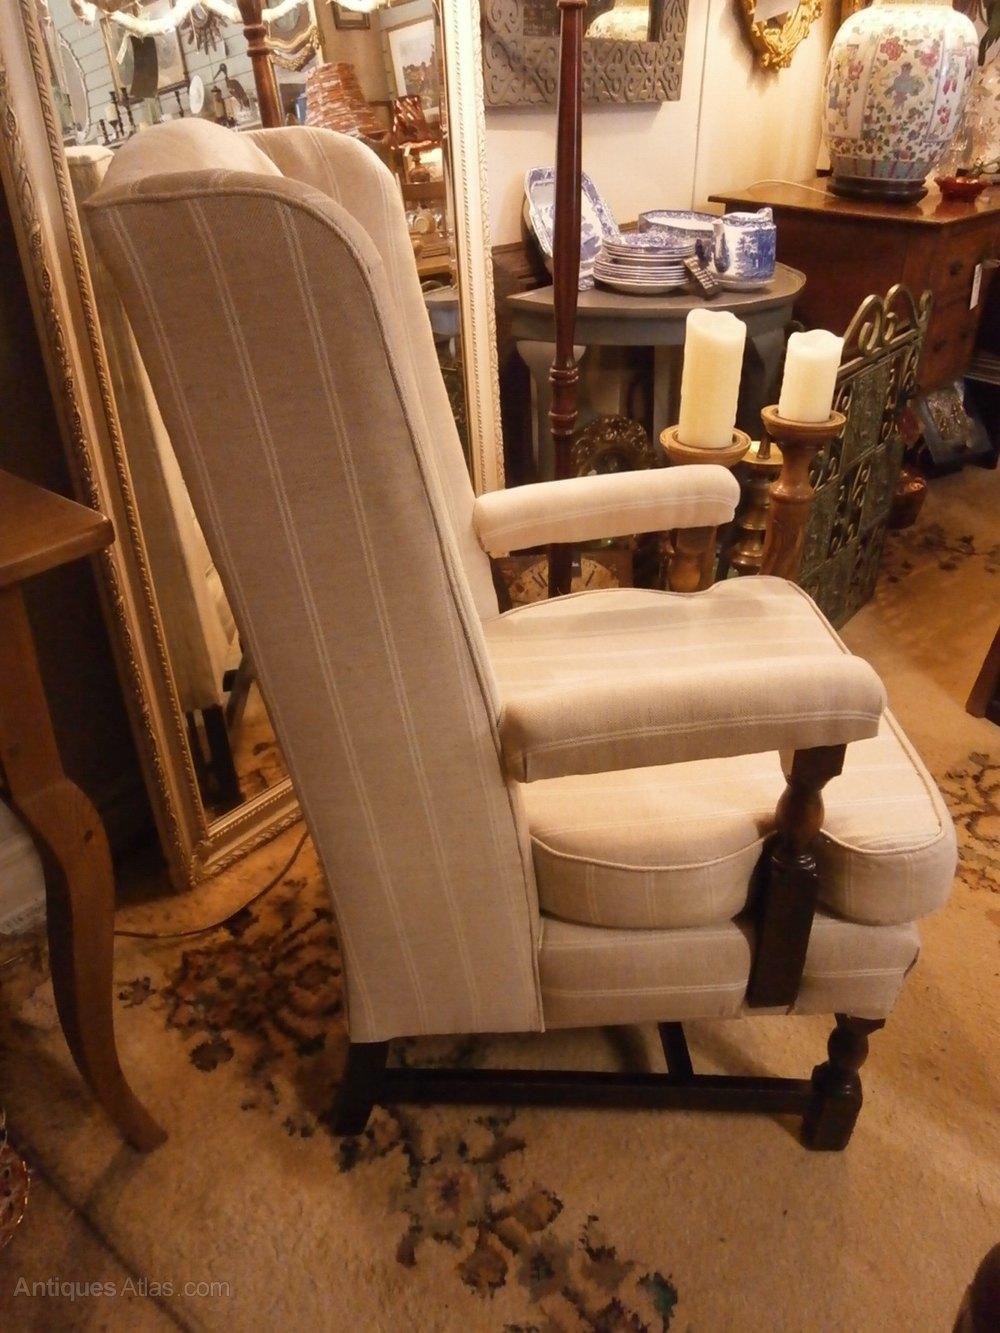 Refurbished Chairs Refurbished 1920s Oak Framed Wing Back Chair Antiques Atlas